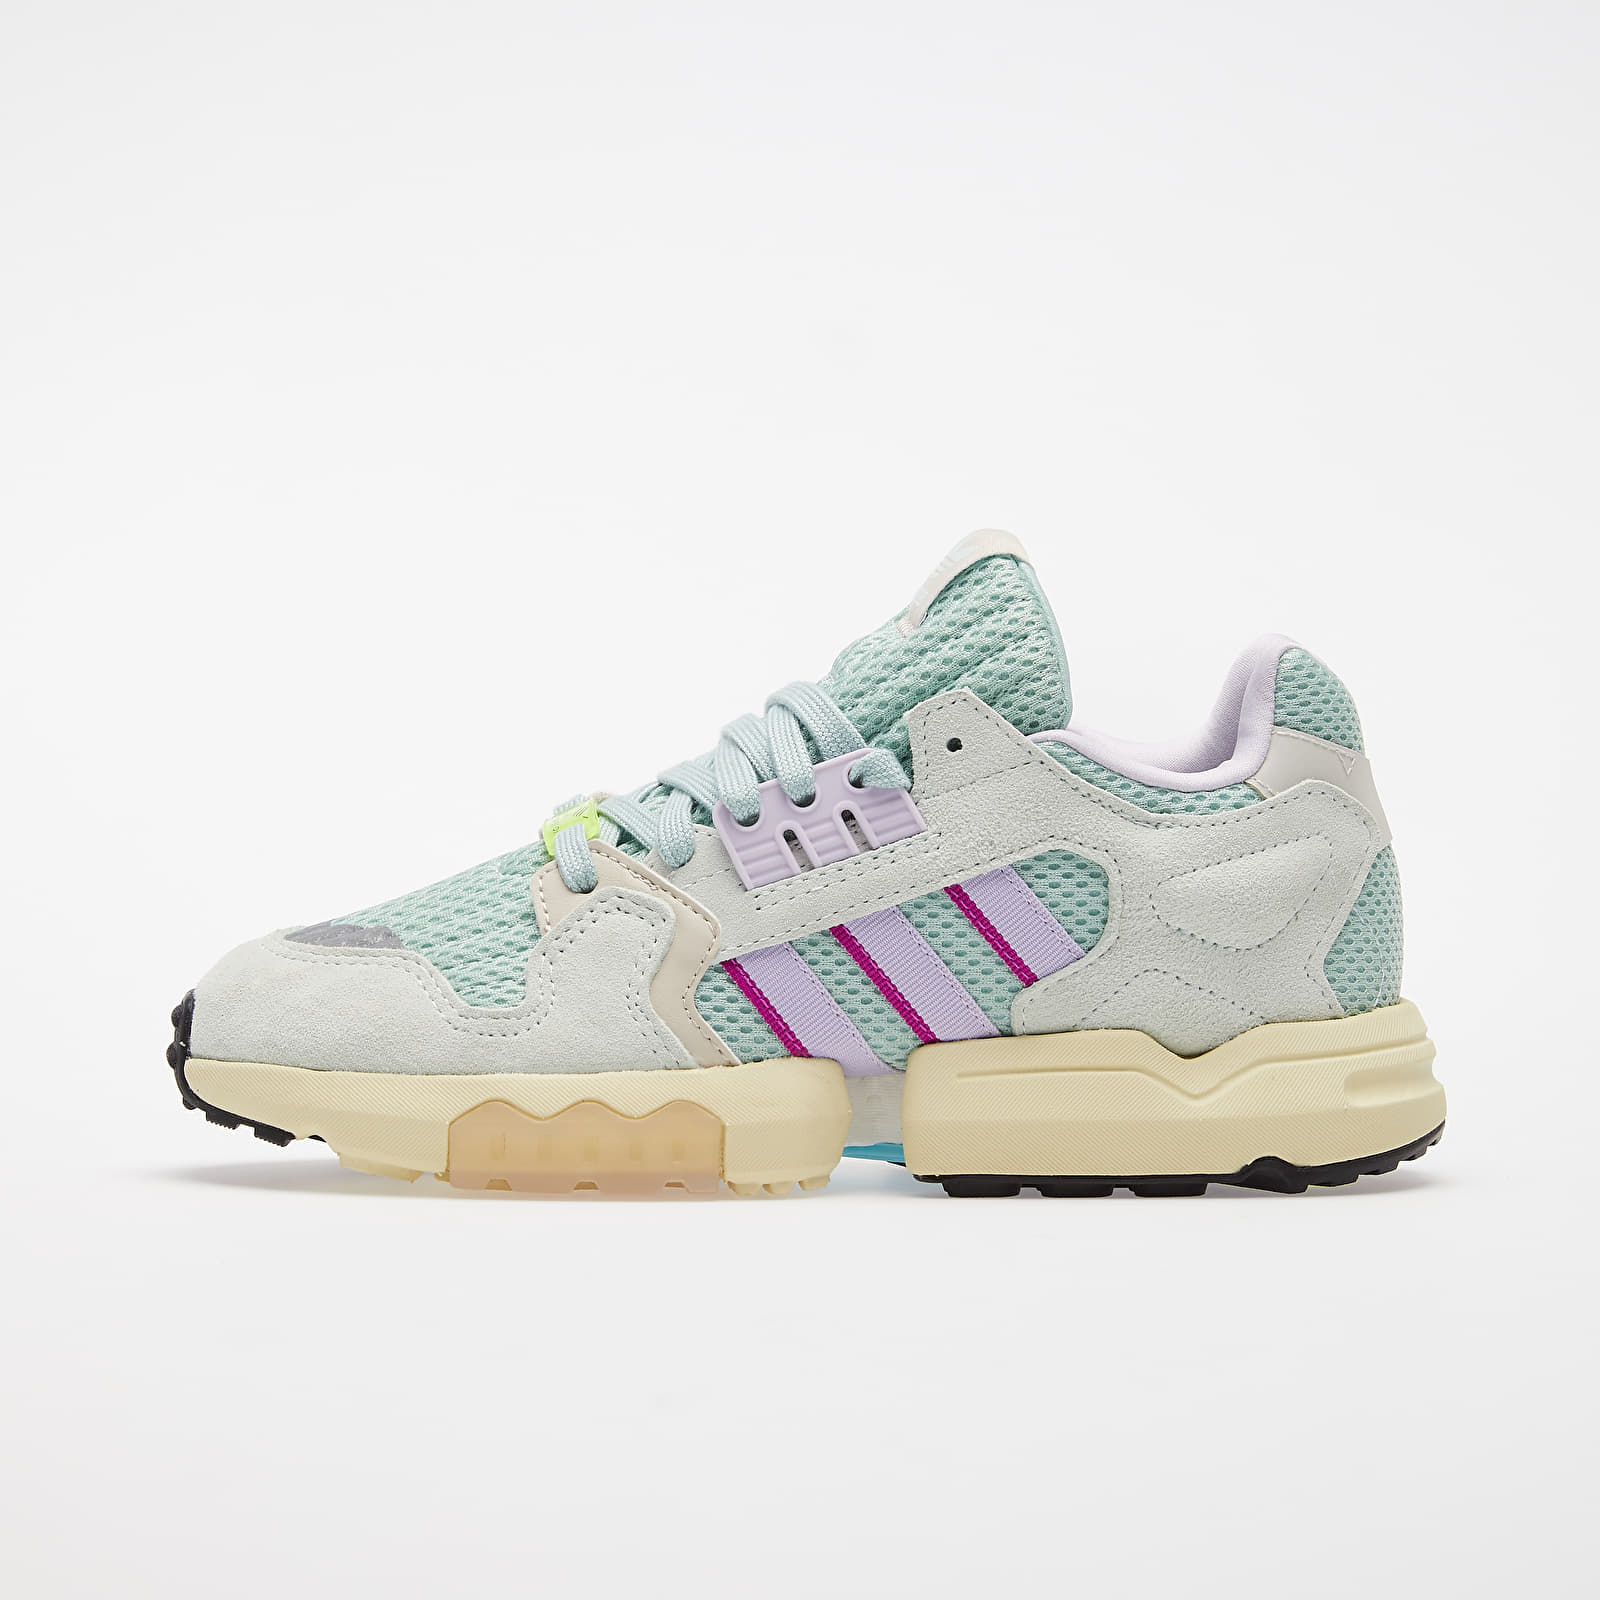 Chaussures et baskets femme adidas ZX Torsion W Green Tint/ Dash Green/ Purple Tint